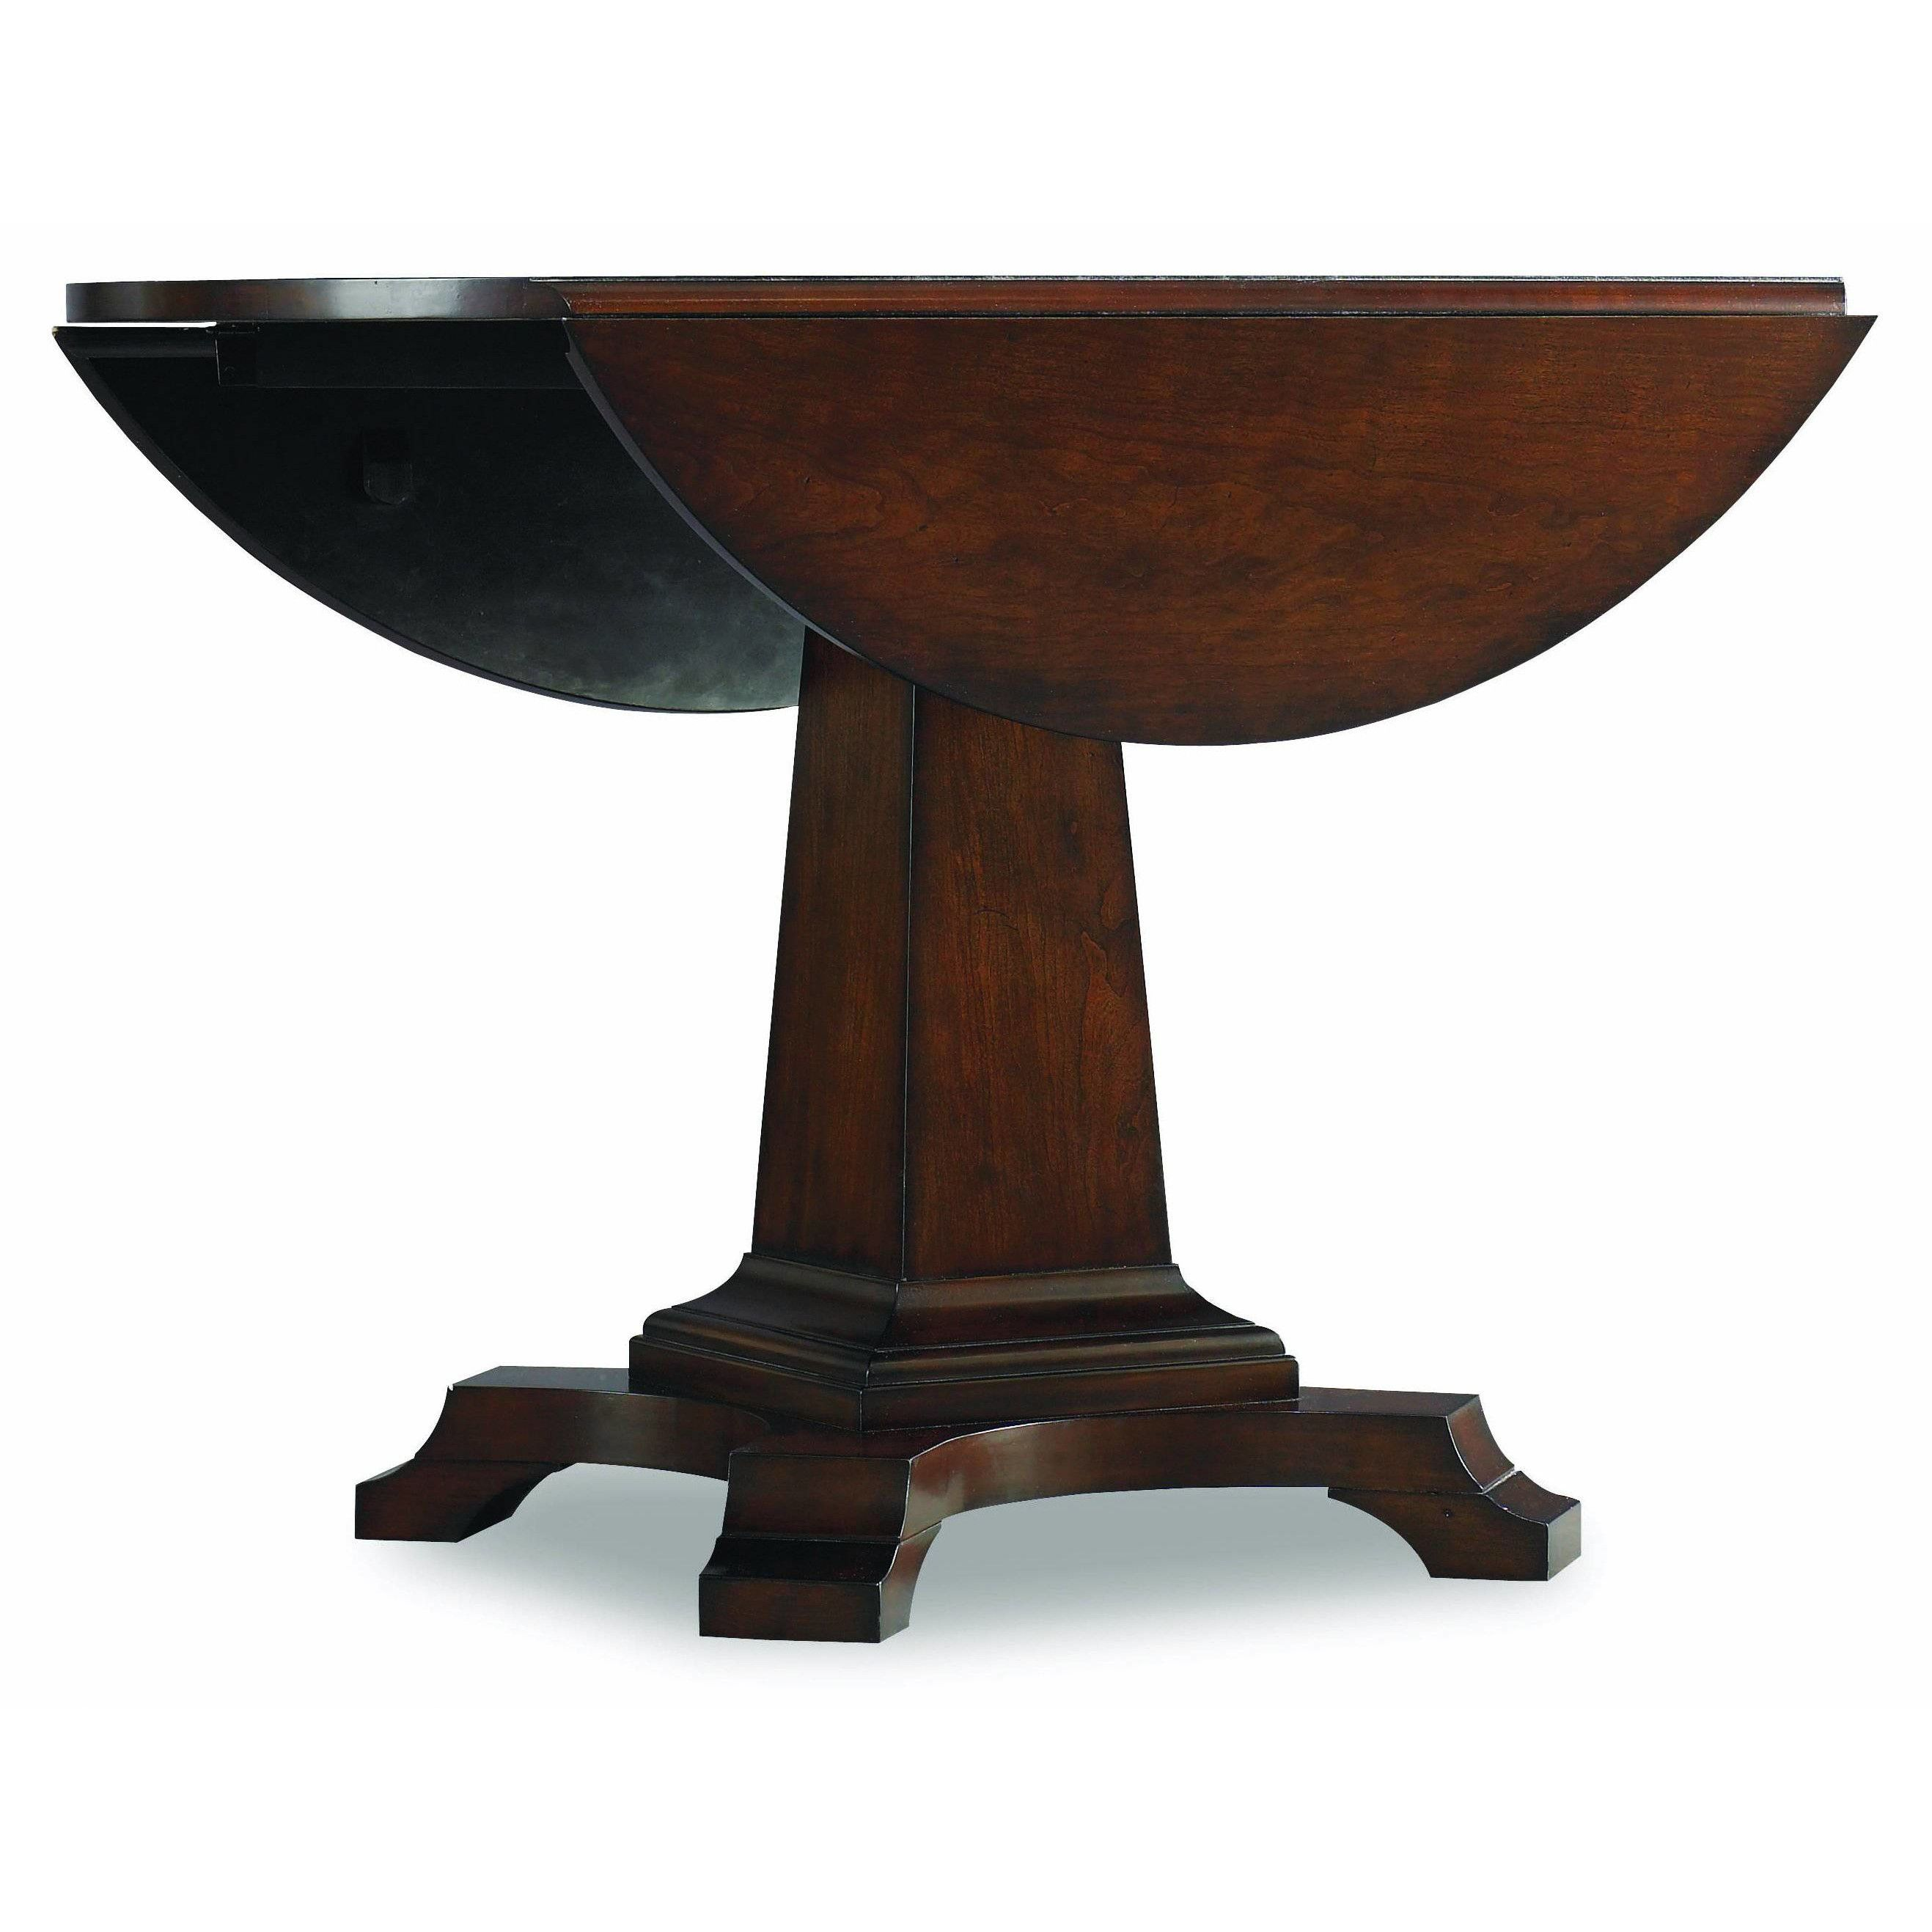 Round Dining Room Table With Leaf: Meidinger Counter Height Solid Wood Dining Table